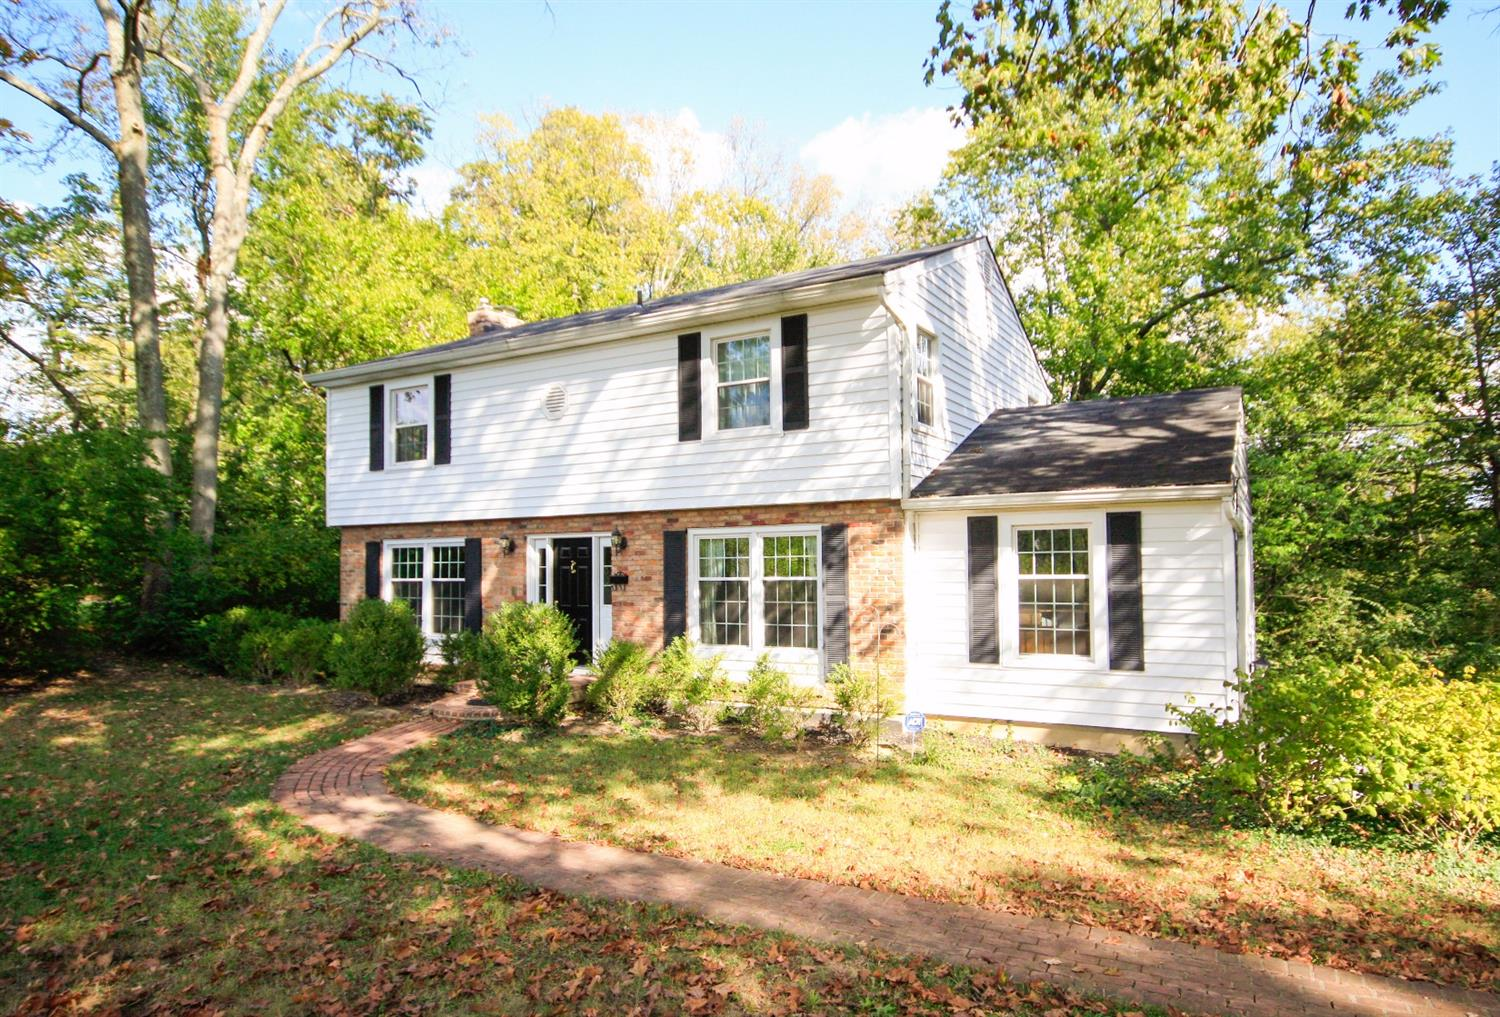 This Colonial Revival sits on 1.17 acres of heavy woods, a unique retreat on a private drive. 5 beds 2 full, 3 half bath. 1st fl master with adjoining full bath could be used as family room/study.  LL walkout with studio, reception area, bath.  New windows and exterior doors. Great private deck and patio area.